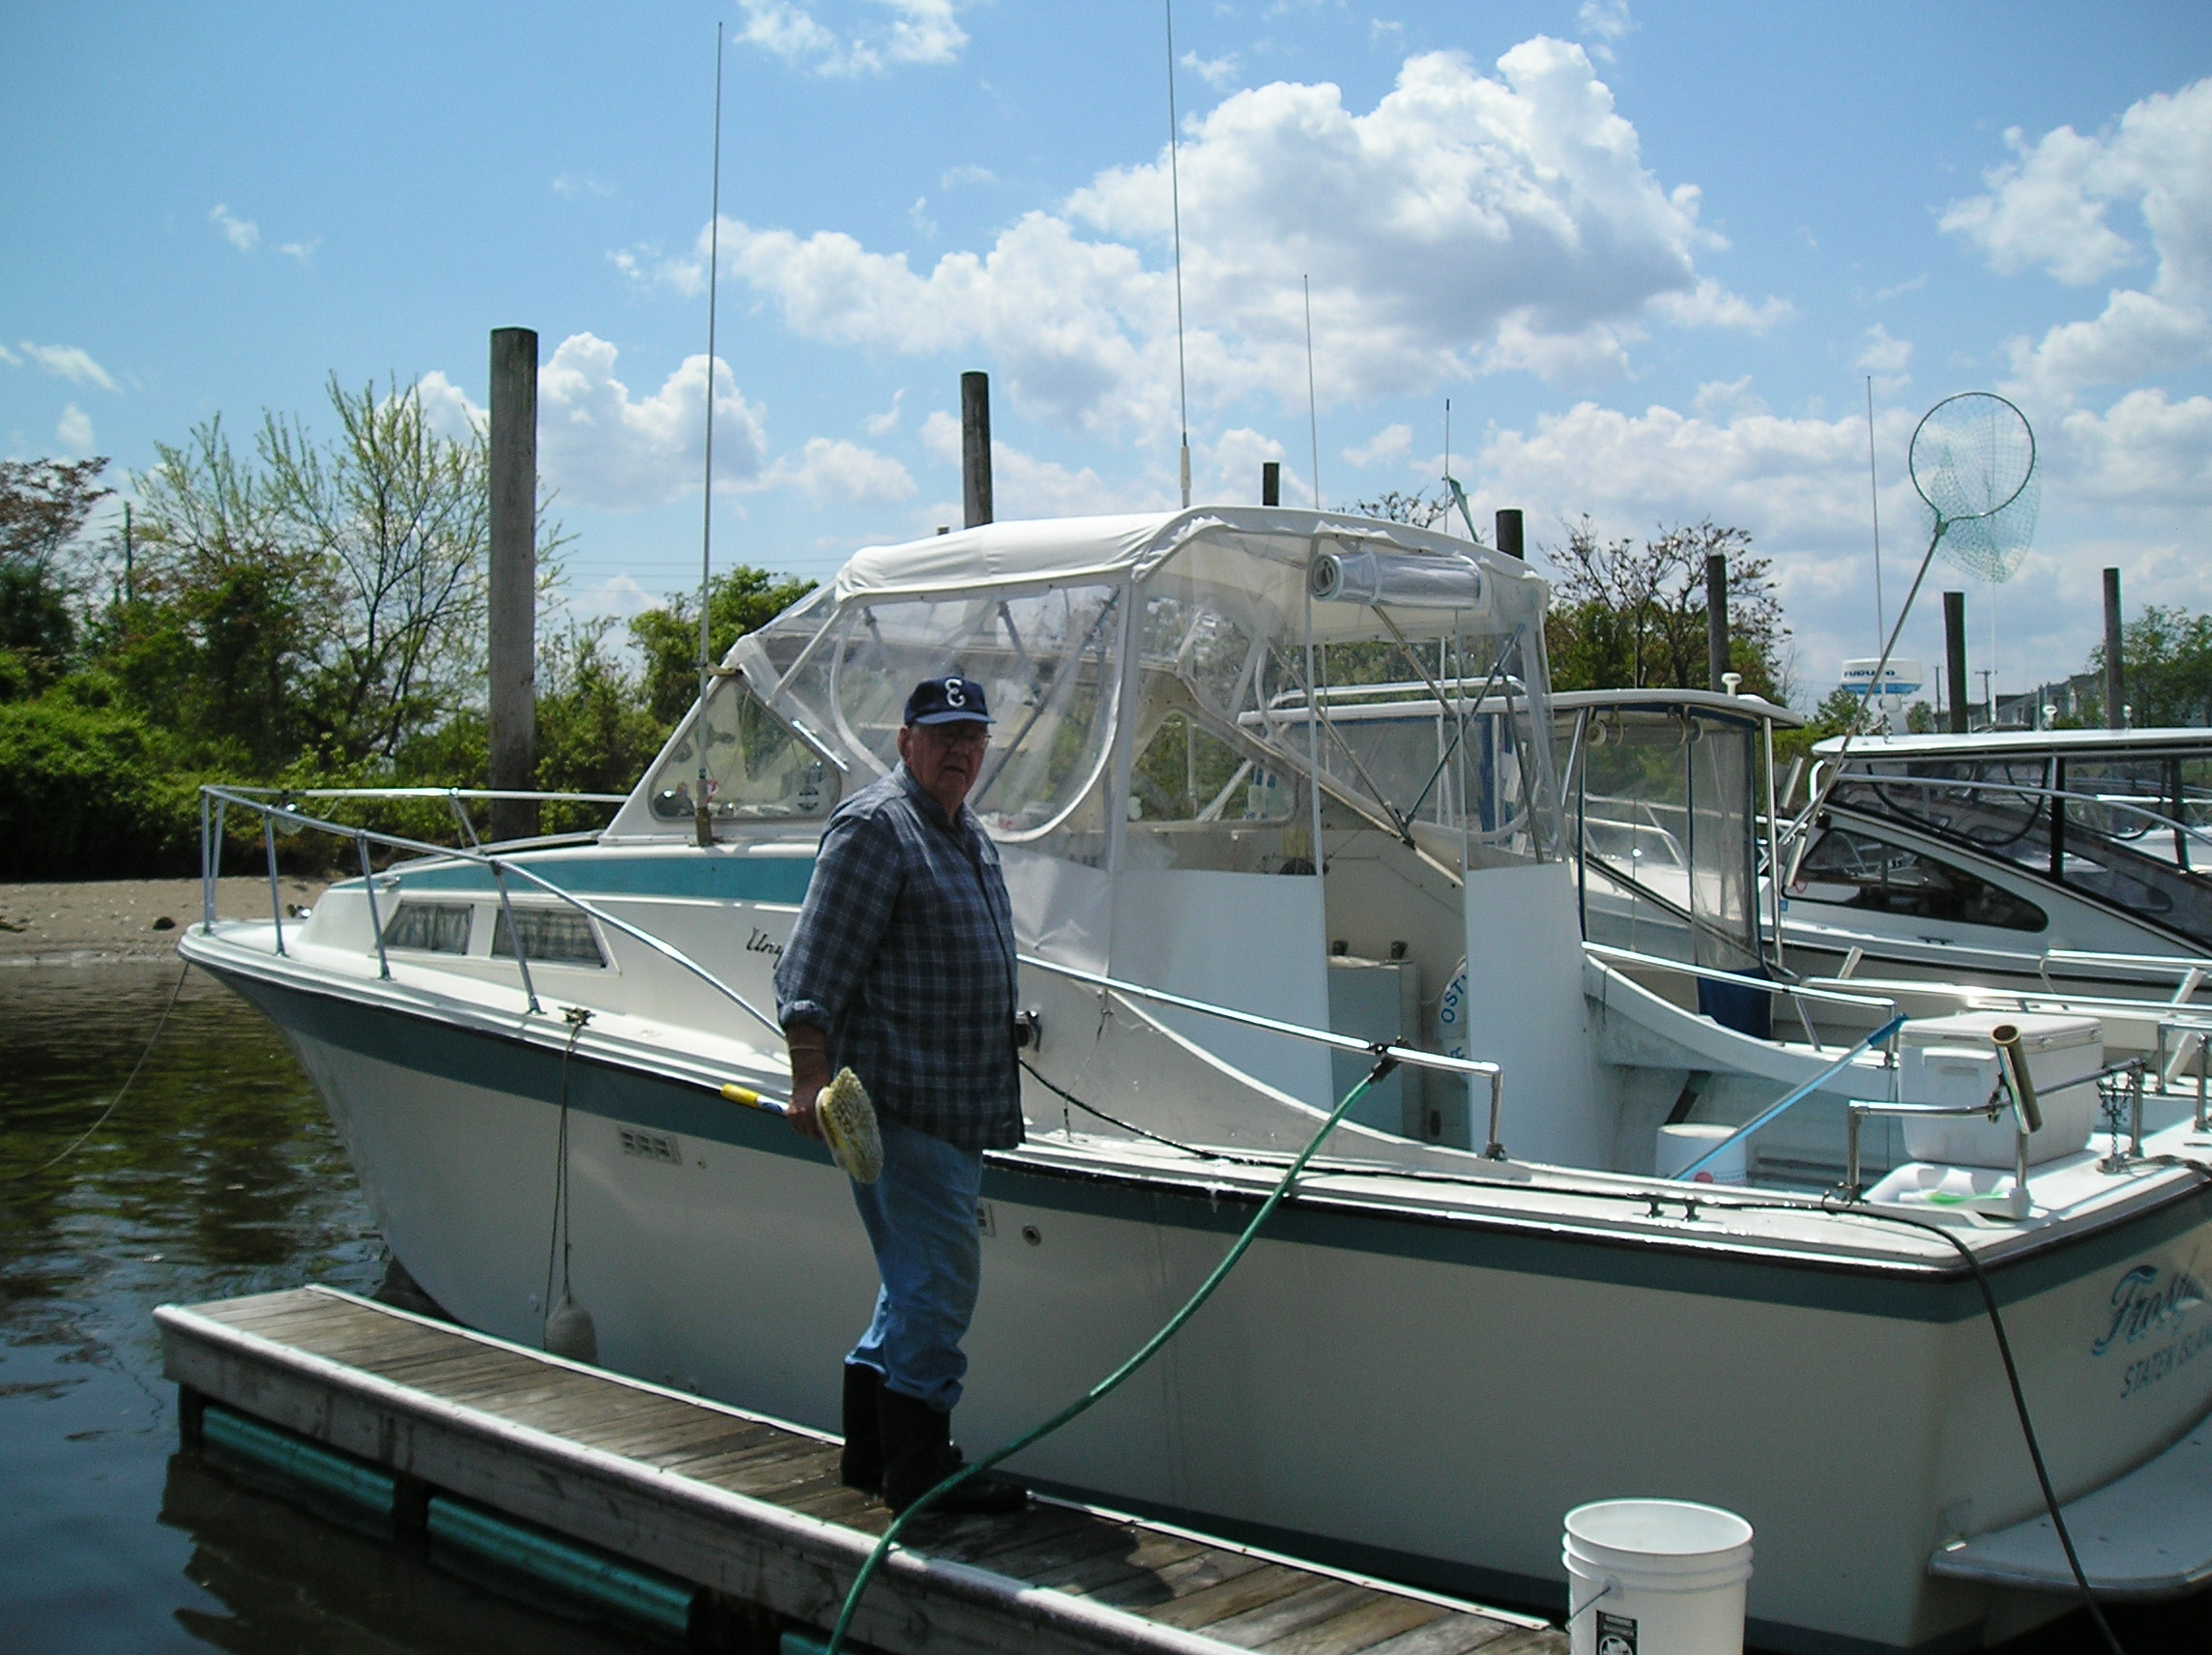 Boat pictures 010